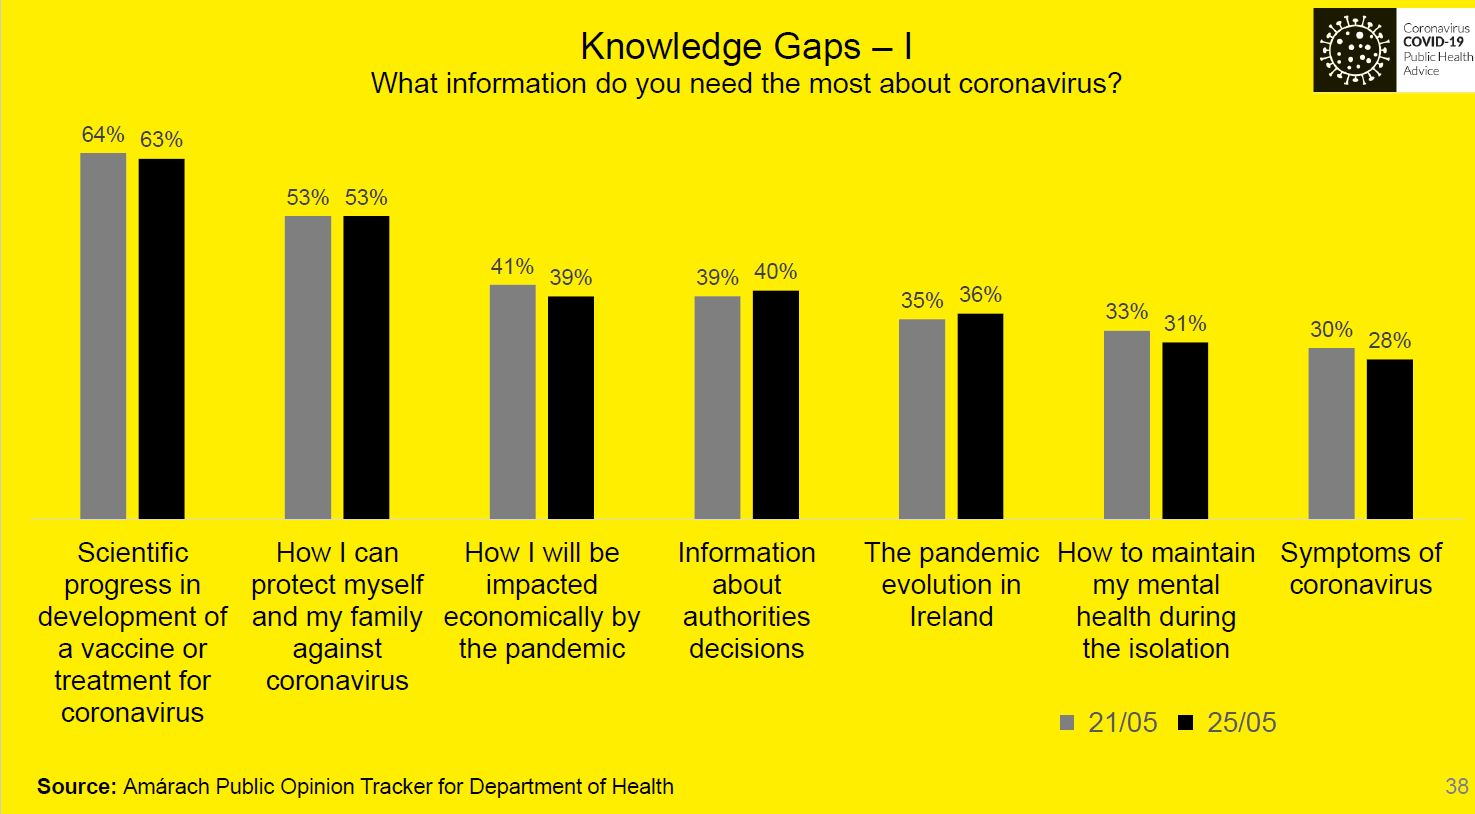 Knowledge Gap - What information do you need the most about coronavirus